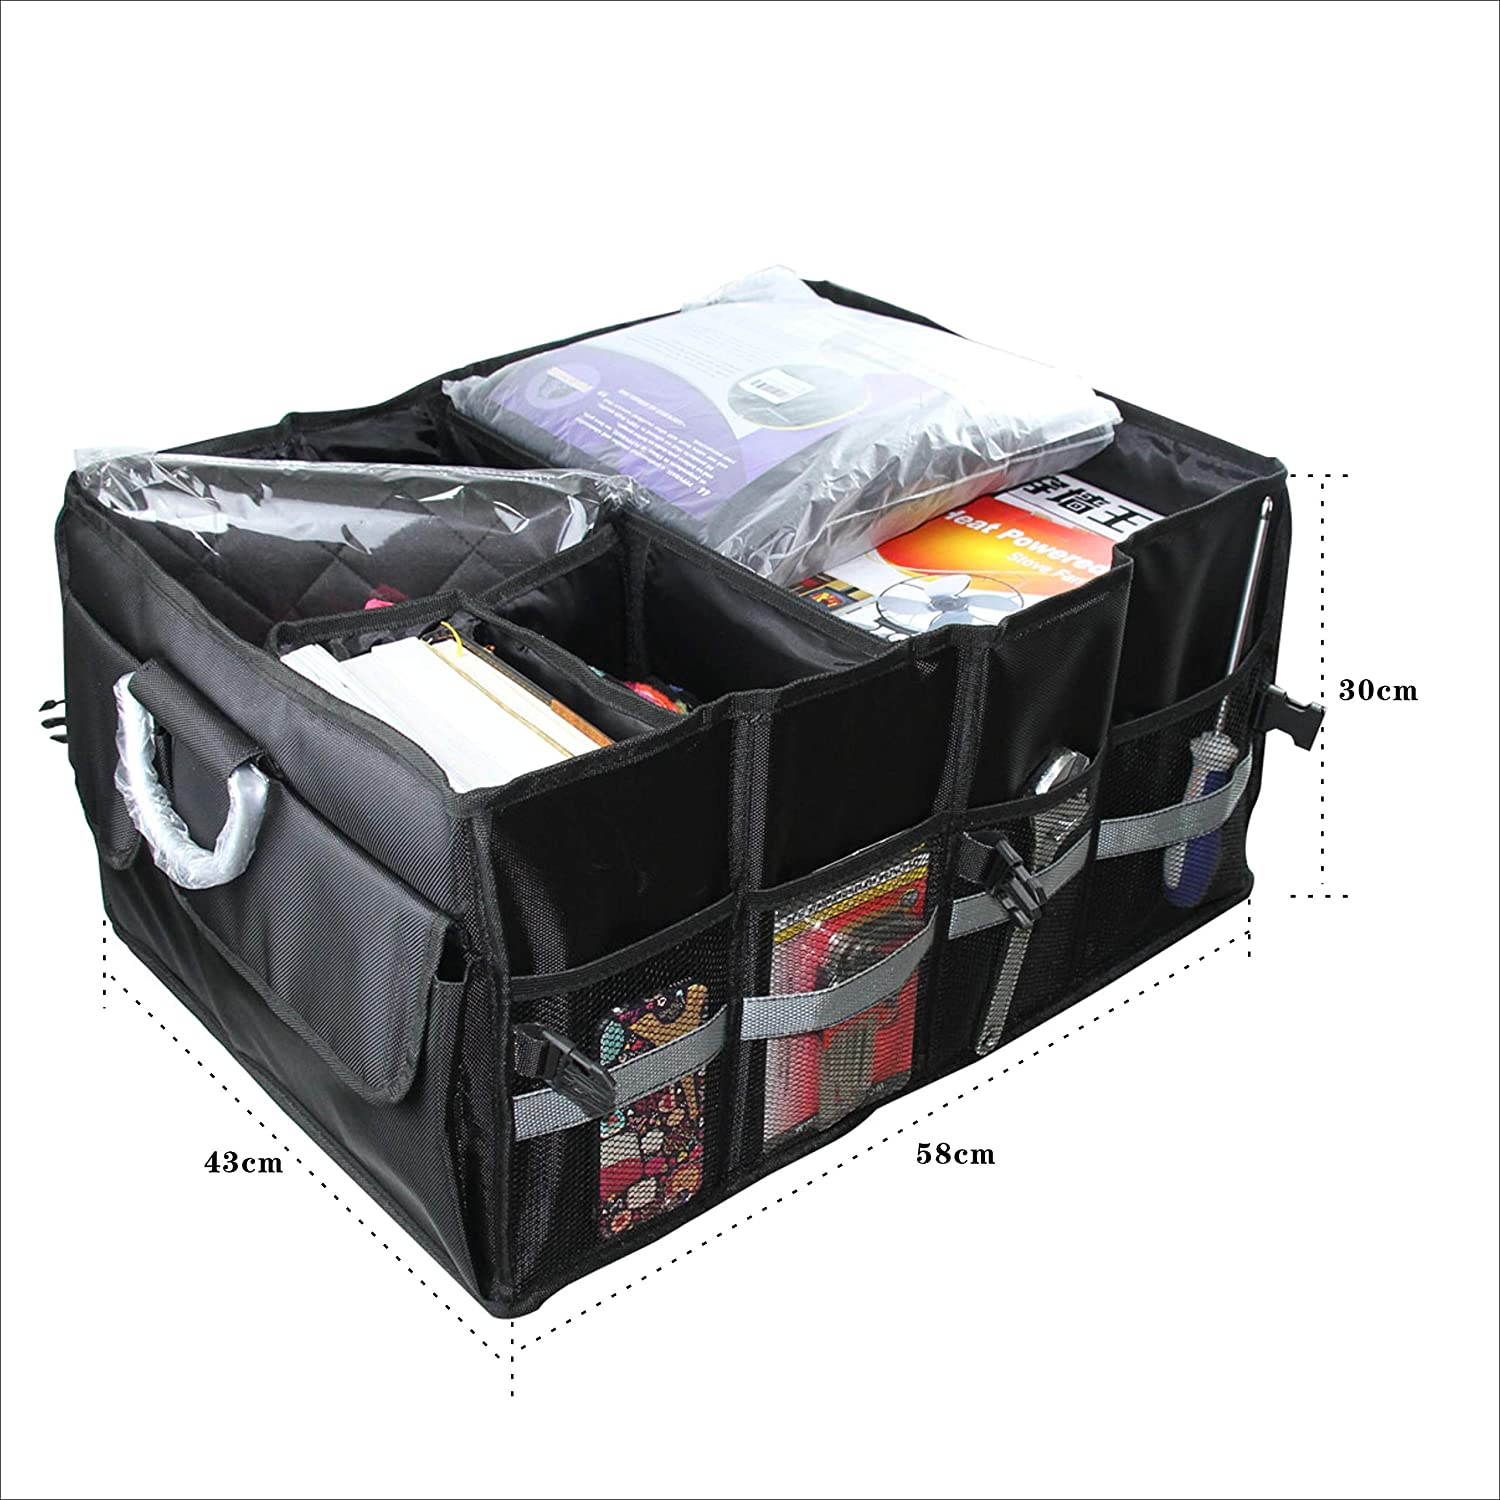 Customizable Multi Compartments Large Waterproof Trucks SUVs Anti Abrasion HD Material Excellent Space Saver Collapsible Portable Trunk Organizer w//Lid Pick-ups and Everyday Vehicles